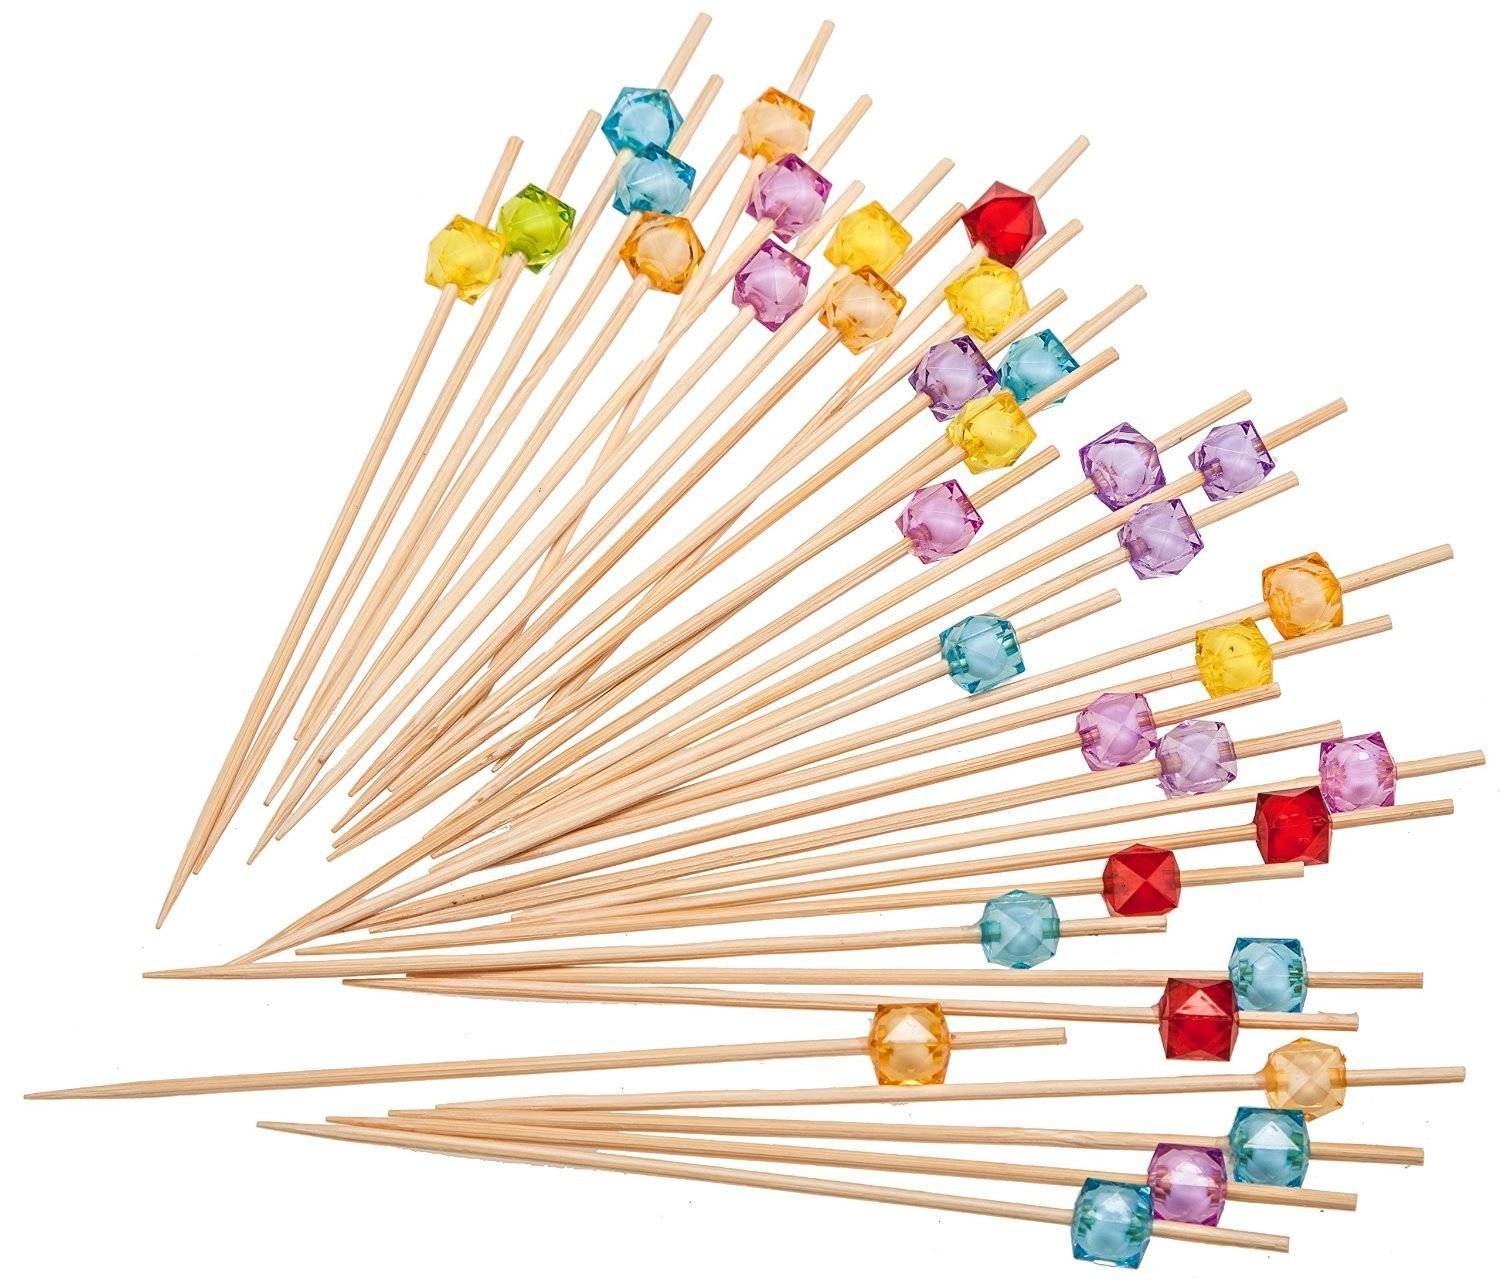 "PuTwo Cocktail Picks Handmade Bamboo Toothpicks 4.7"" Multicolor Dice in 300 Counts"